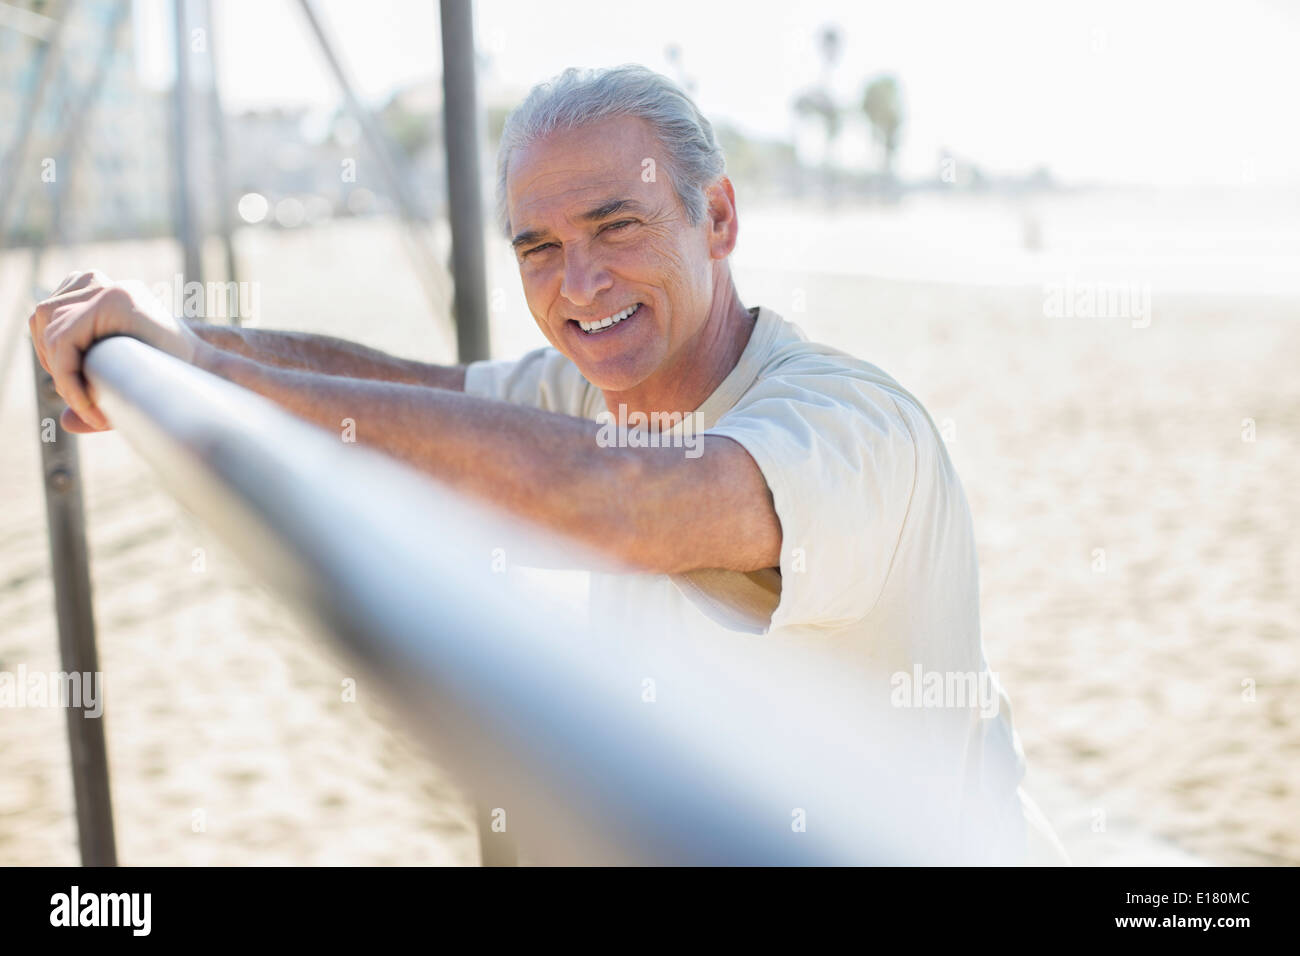 Portrait of senior man leaning on bar at beach - Stock Image